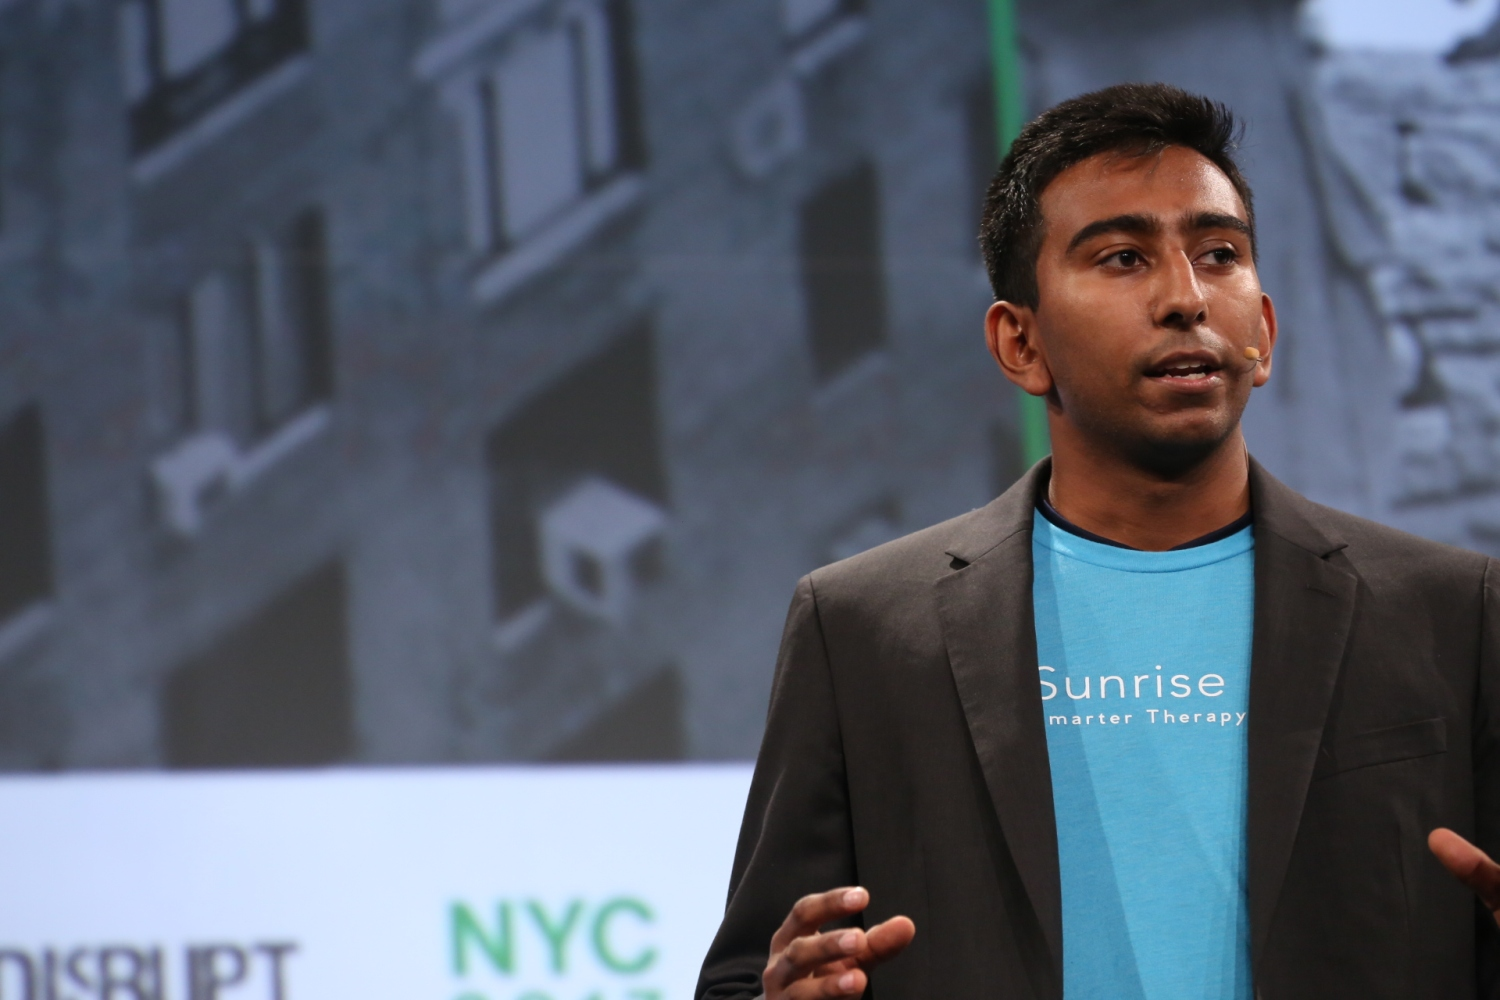 Sunrise Health presents at Startup Battlefield at TechCrunch Disrupt NY 2017